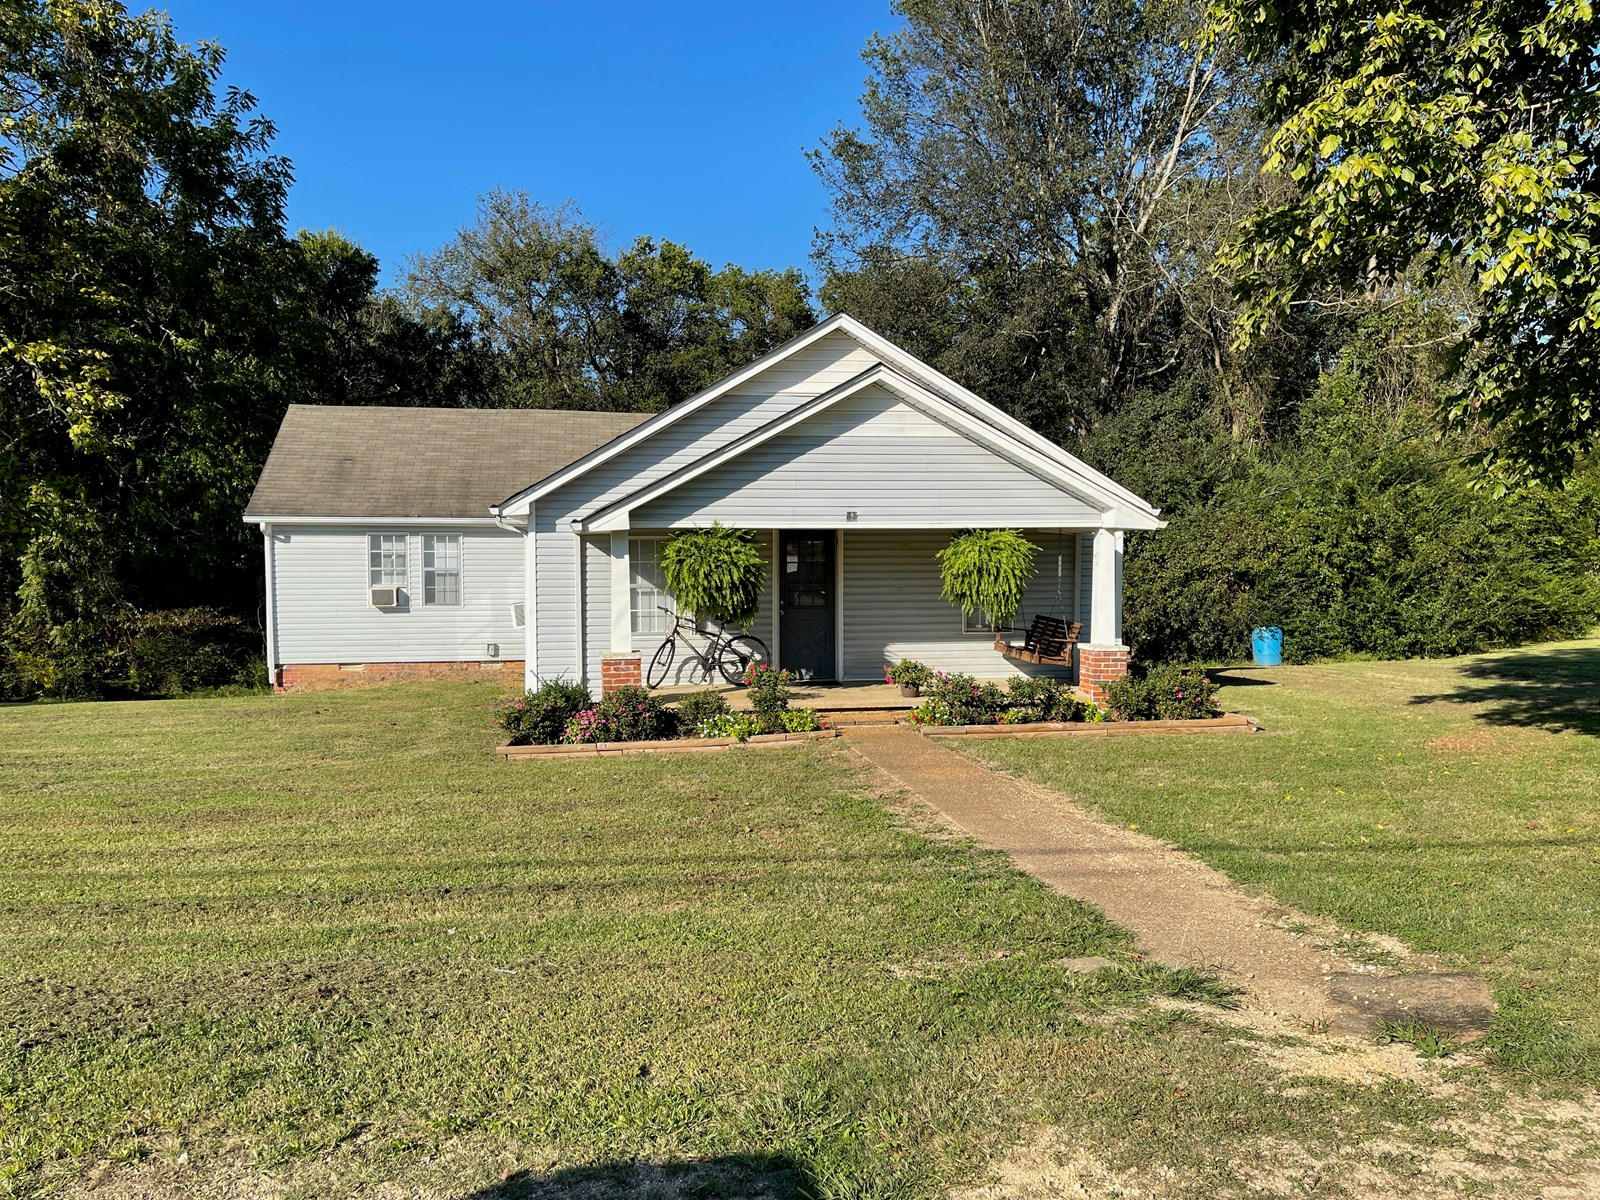 AFFORDABLE HOME FOR SALE IN HARDIN CO NEAR TN RIVER FISHING